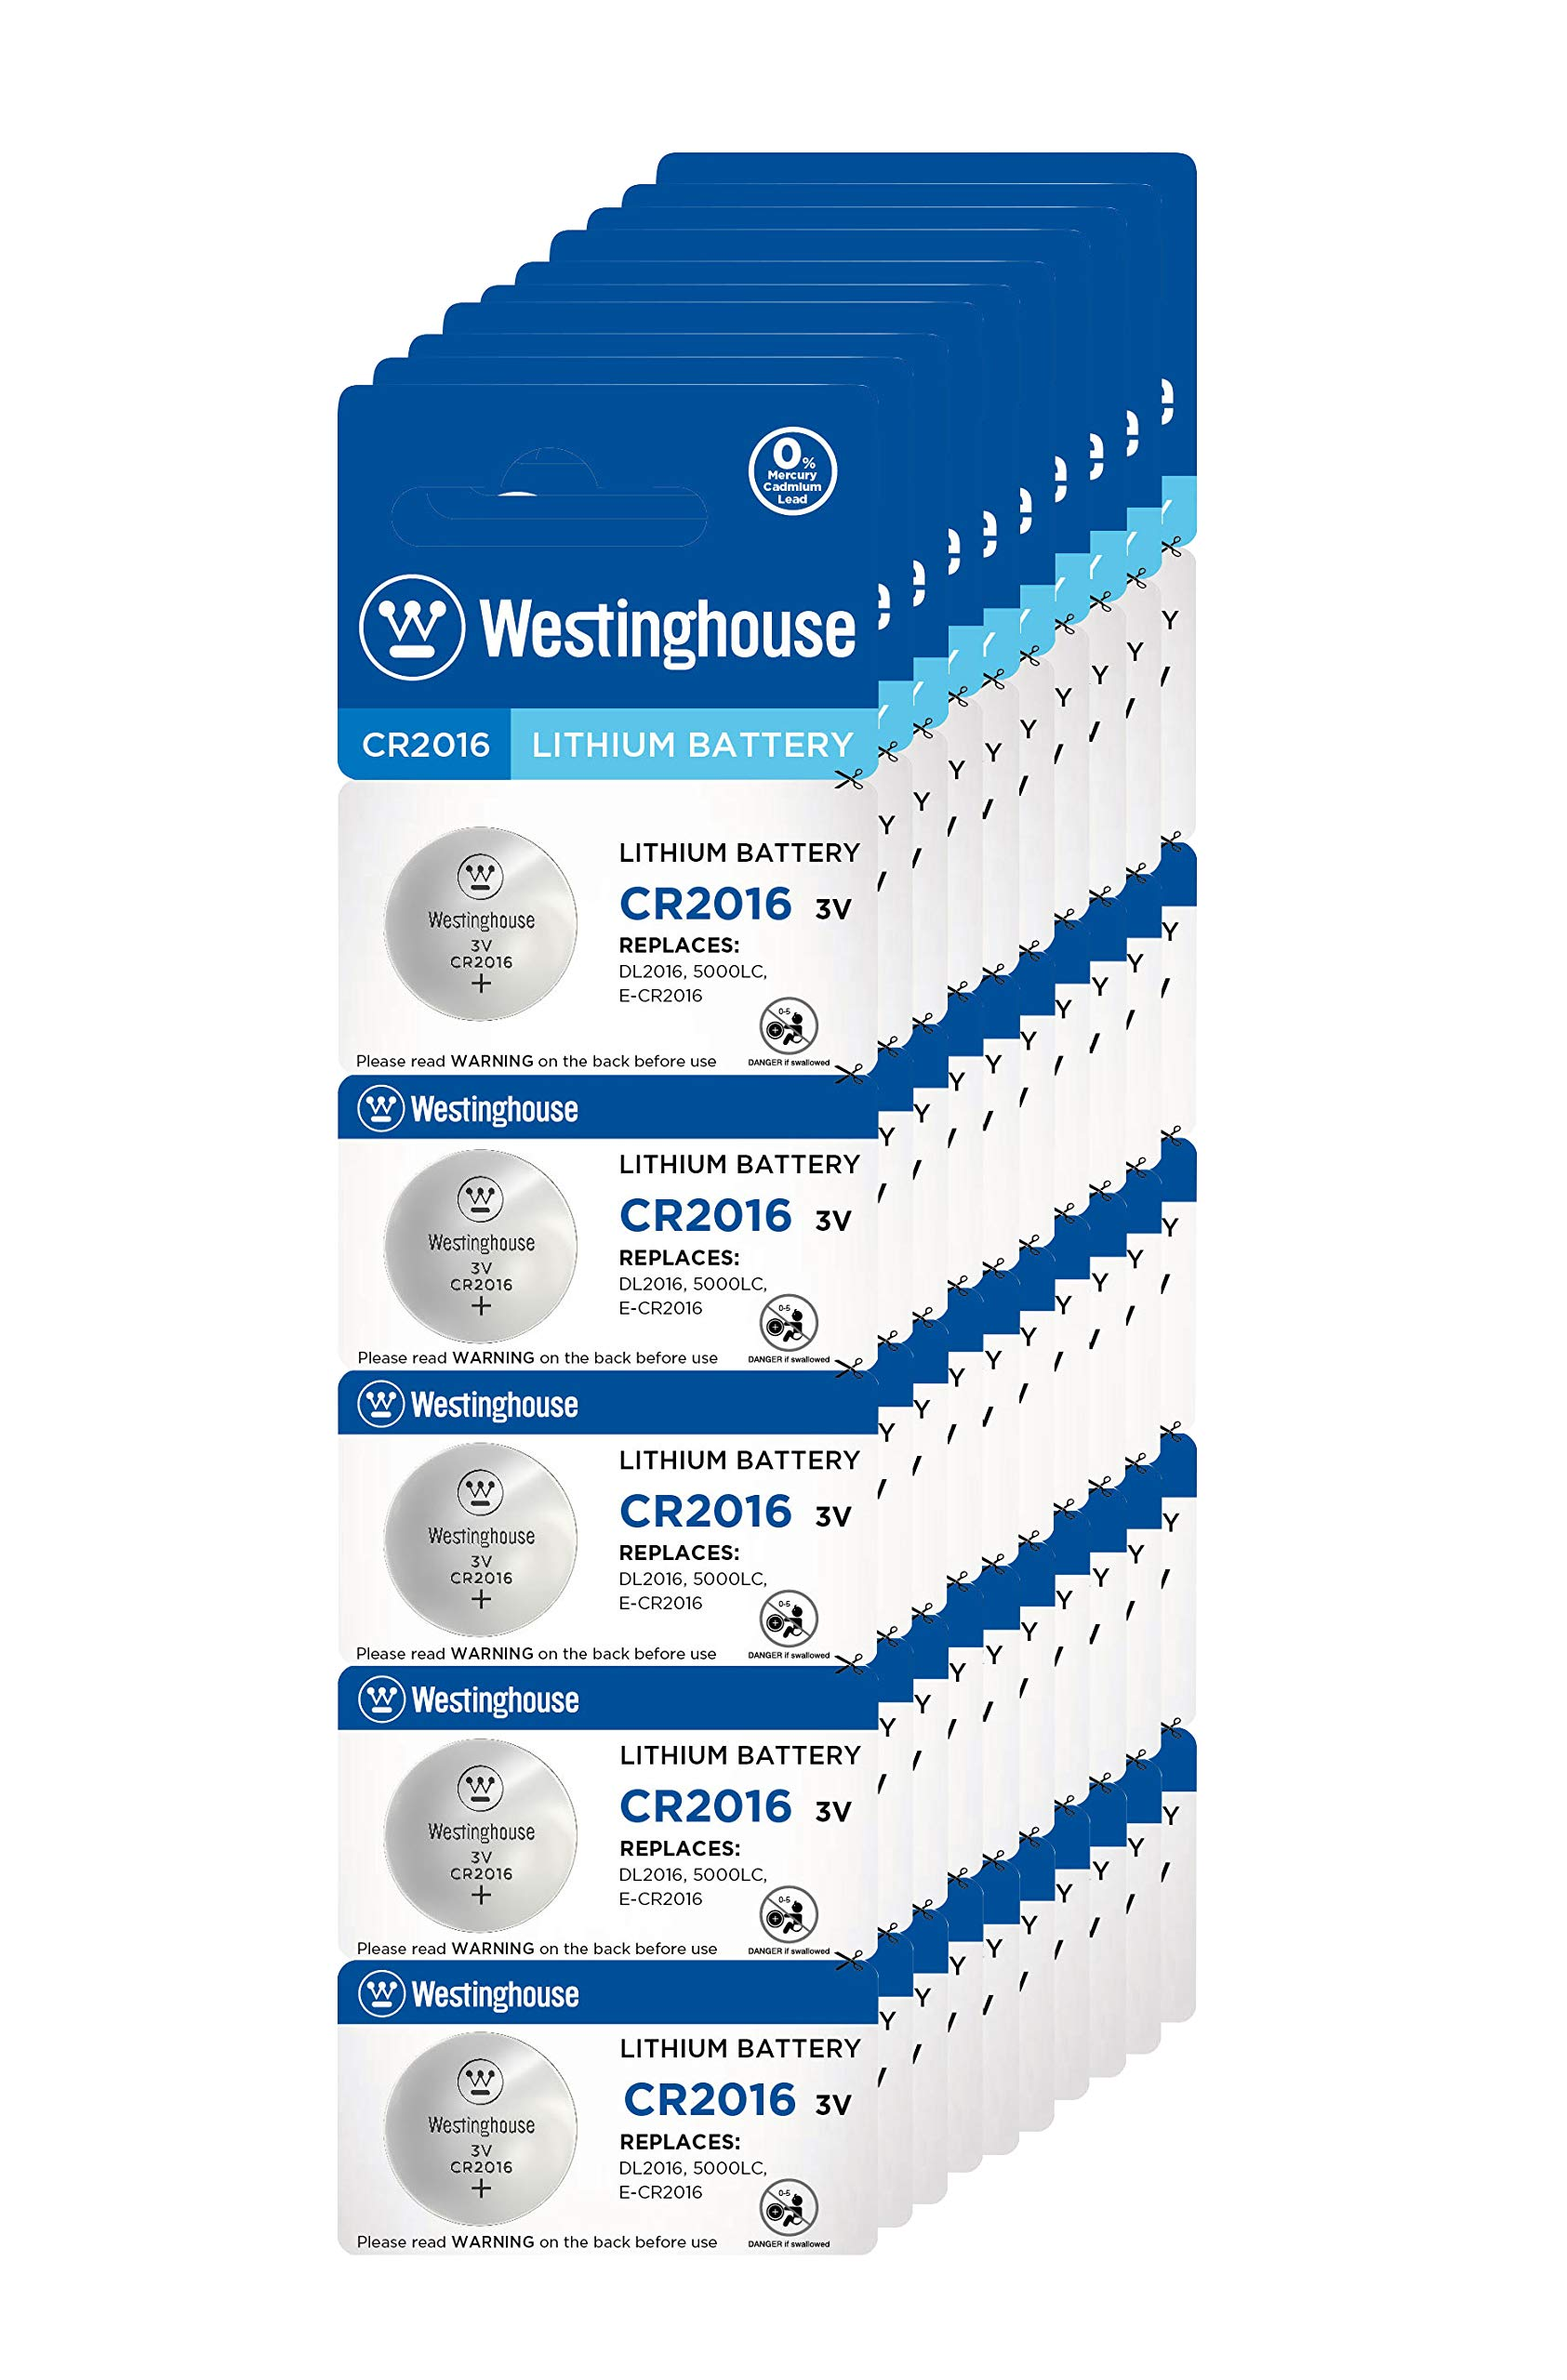 Westinghouse CR2016 Lithium Button Cell, Button Batteries, Coin Cells, Remote Battery, Remote Battery Cells (50 Counts)